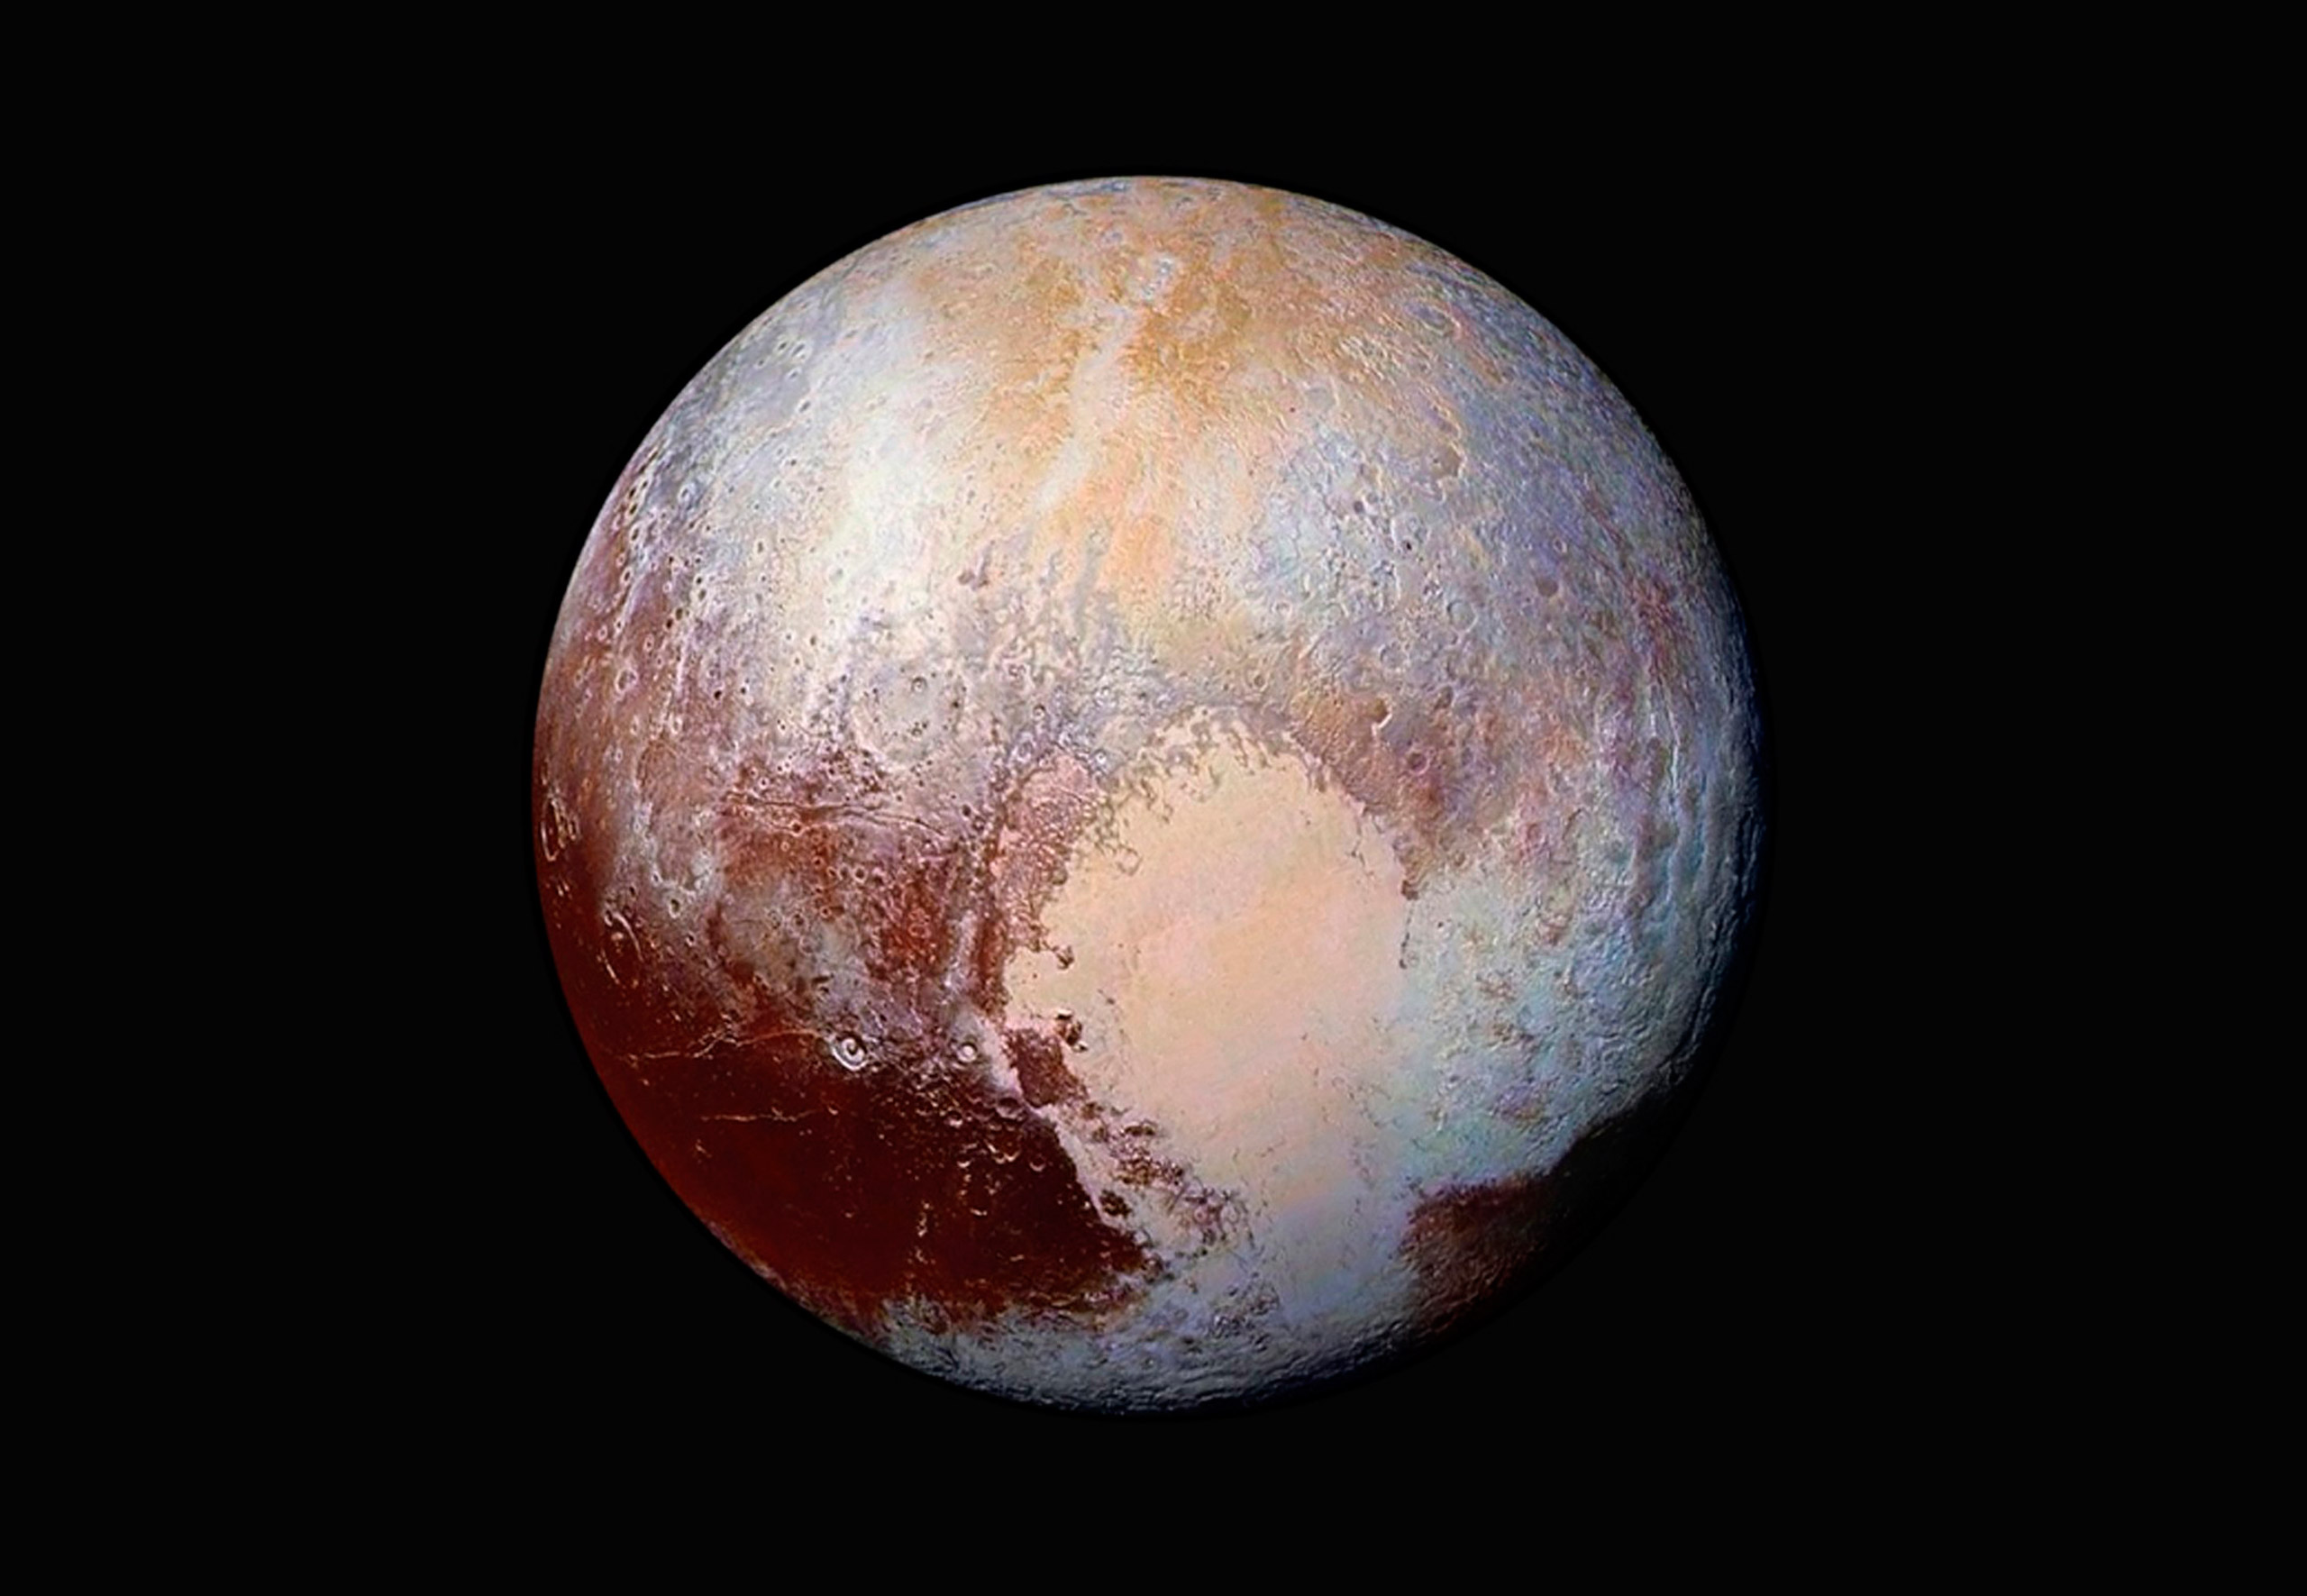 An enhanced color global view of pluto released on July 24, 2015.